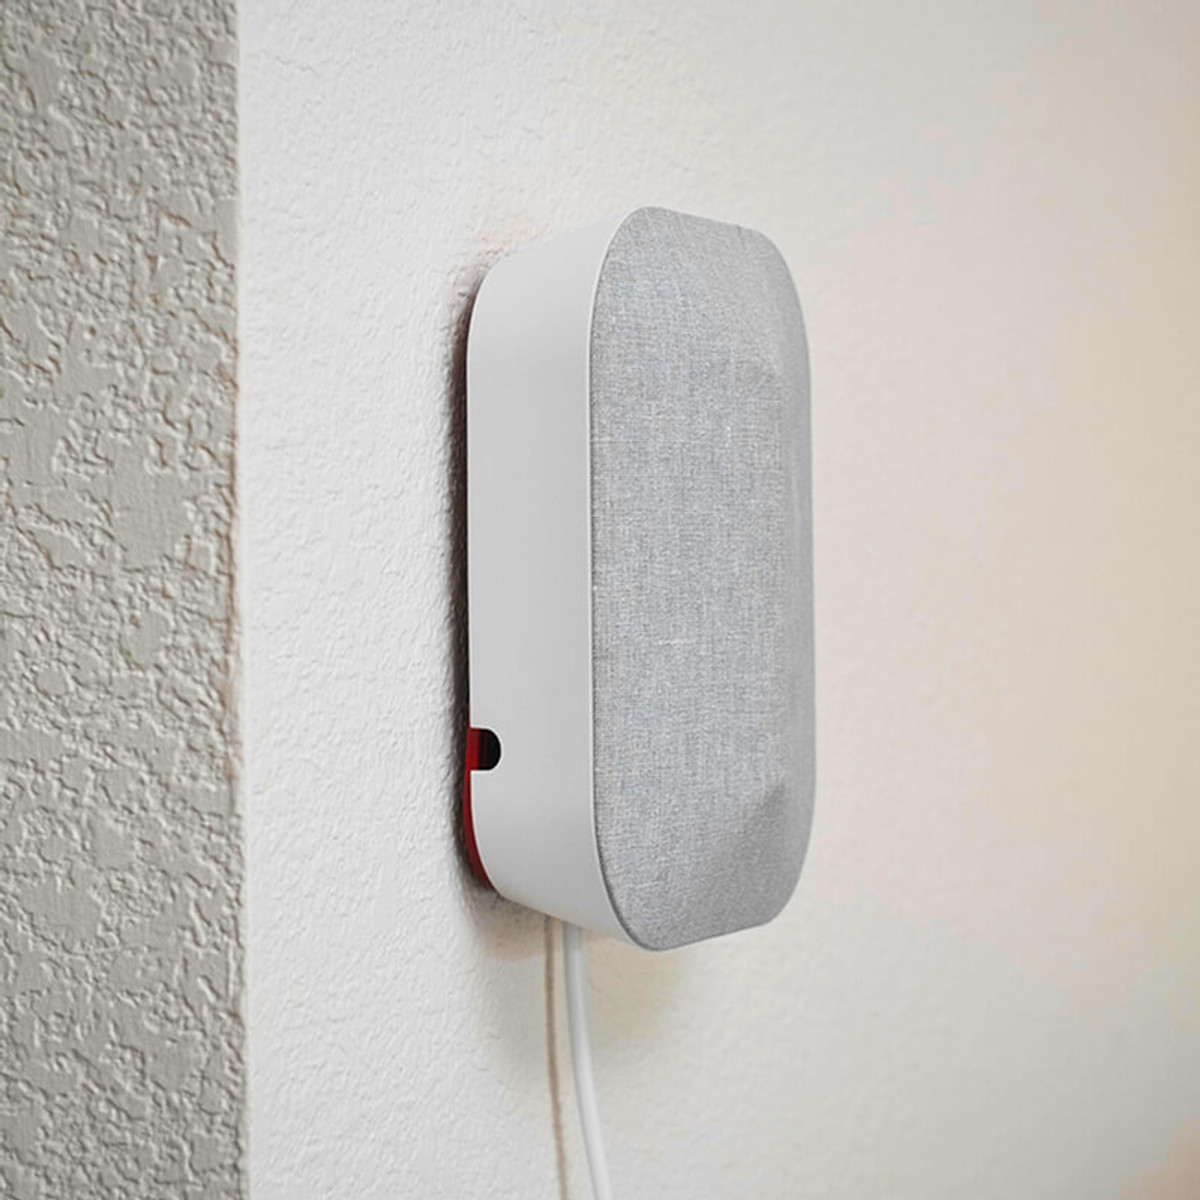 weBoost Home MultiRoom Cell Phone Signal Booster Indoor Antenna (Mounted)